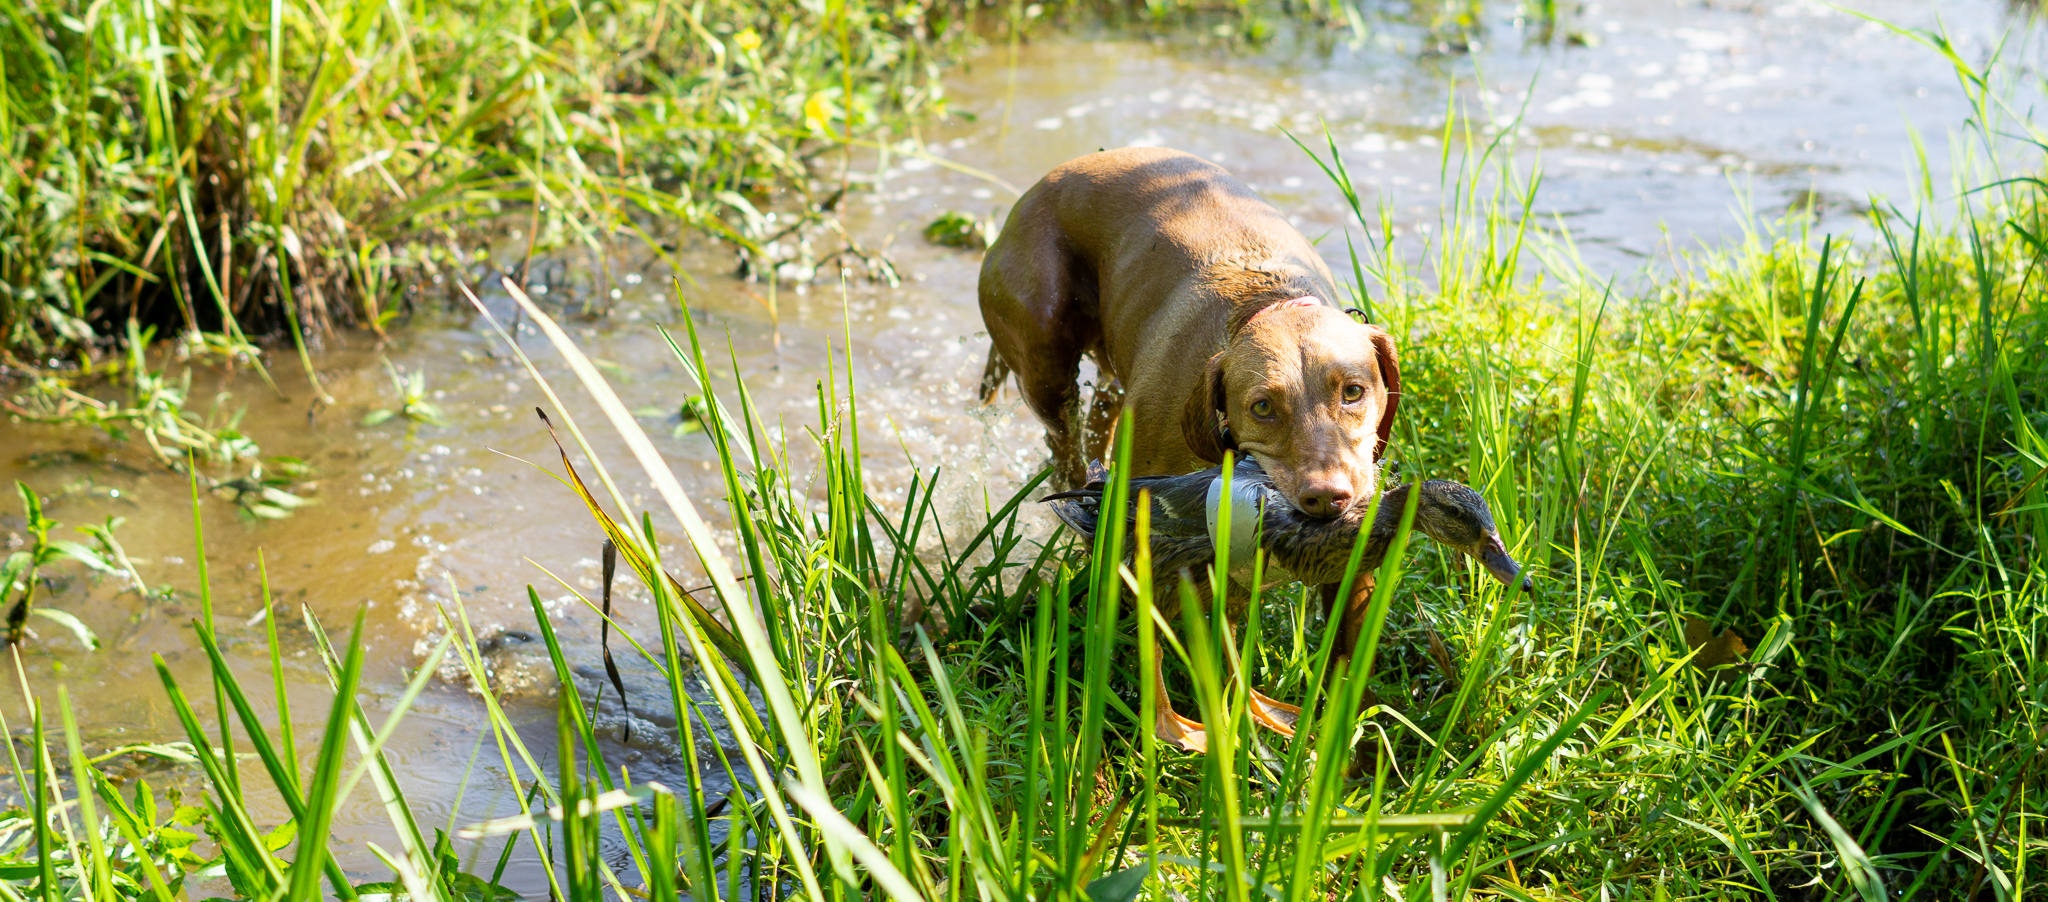 Zara retrieves a live duck during duck search training